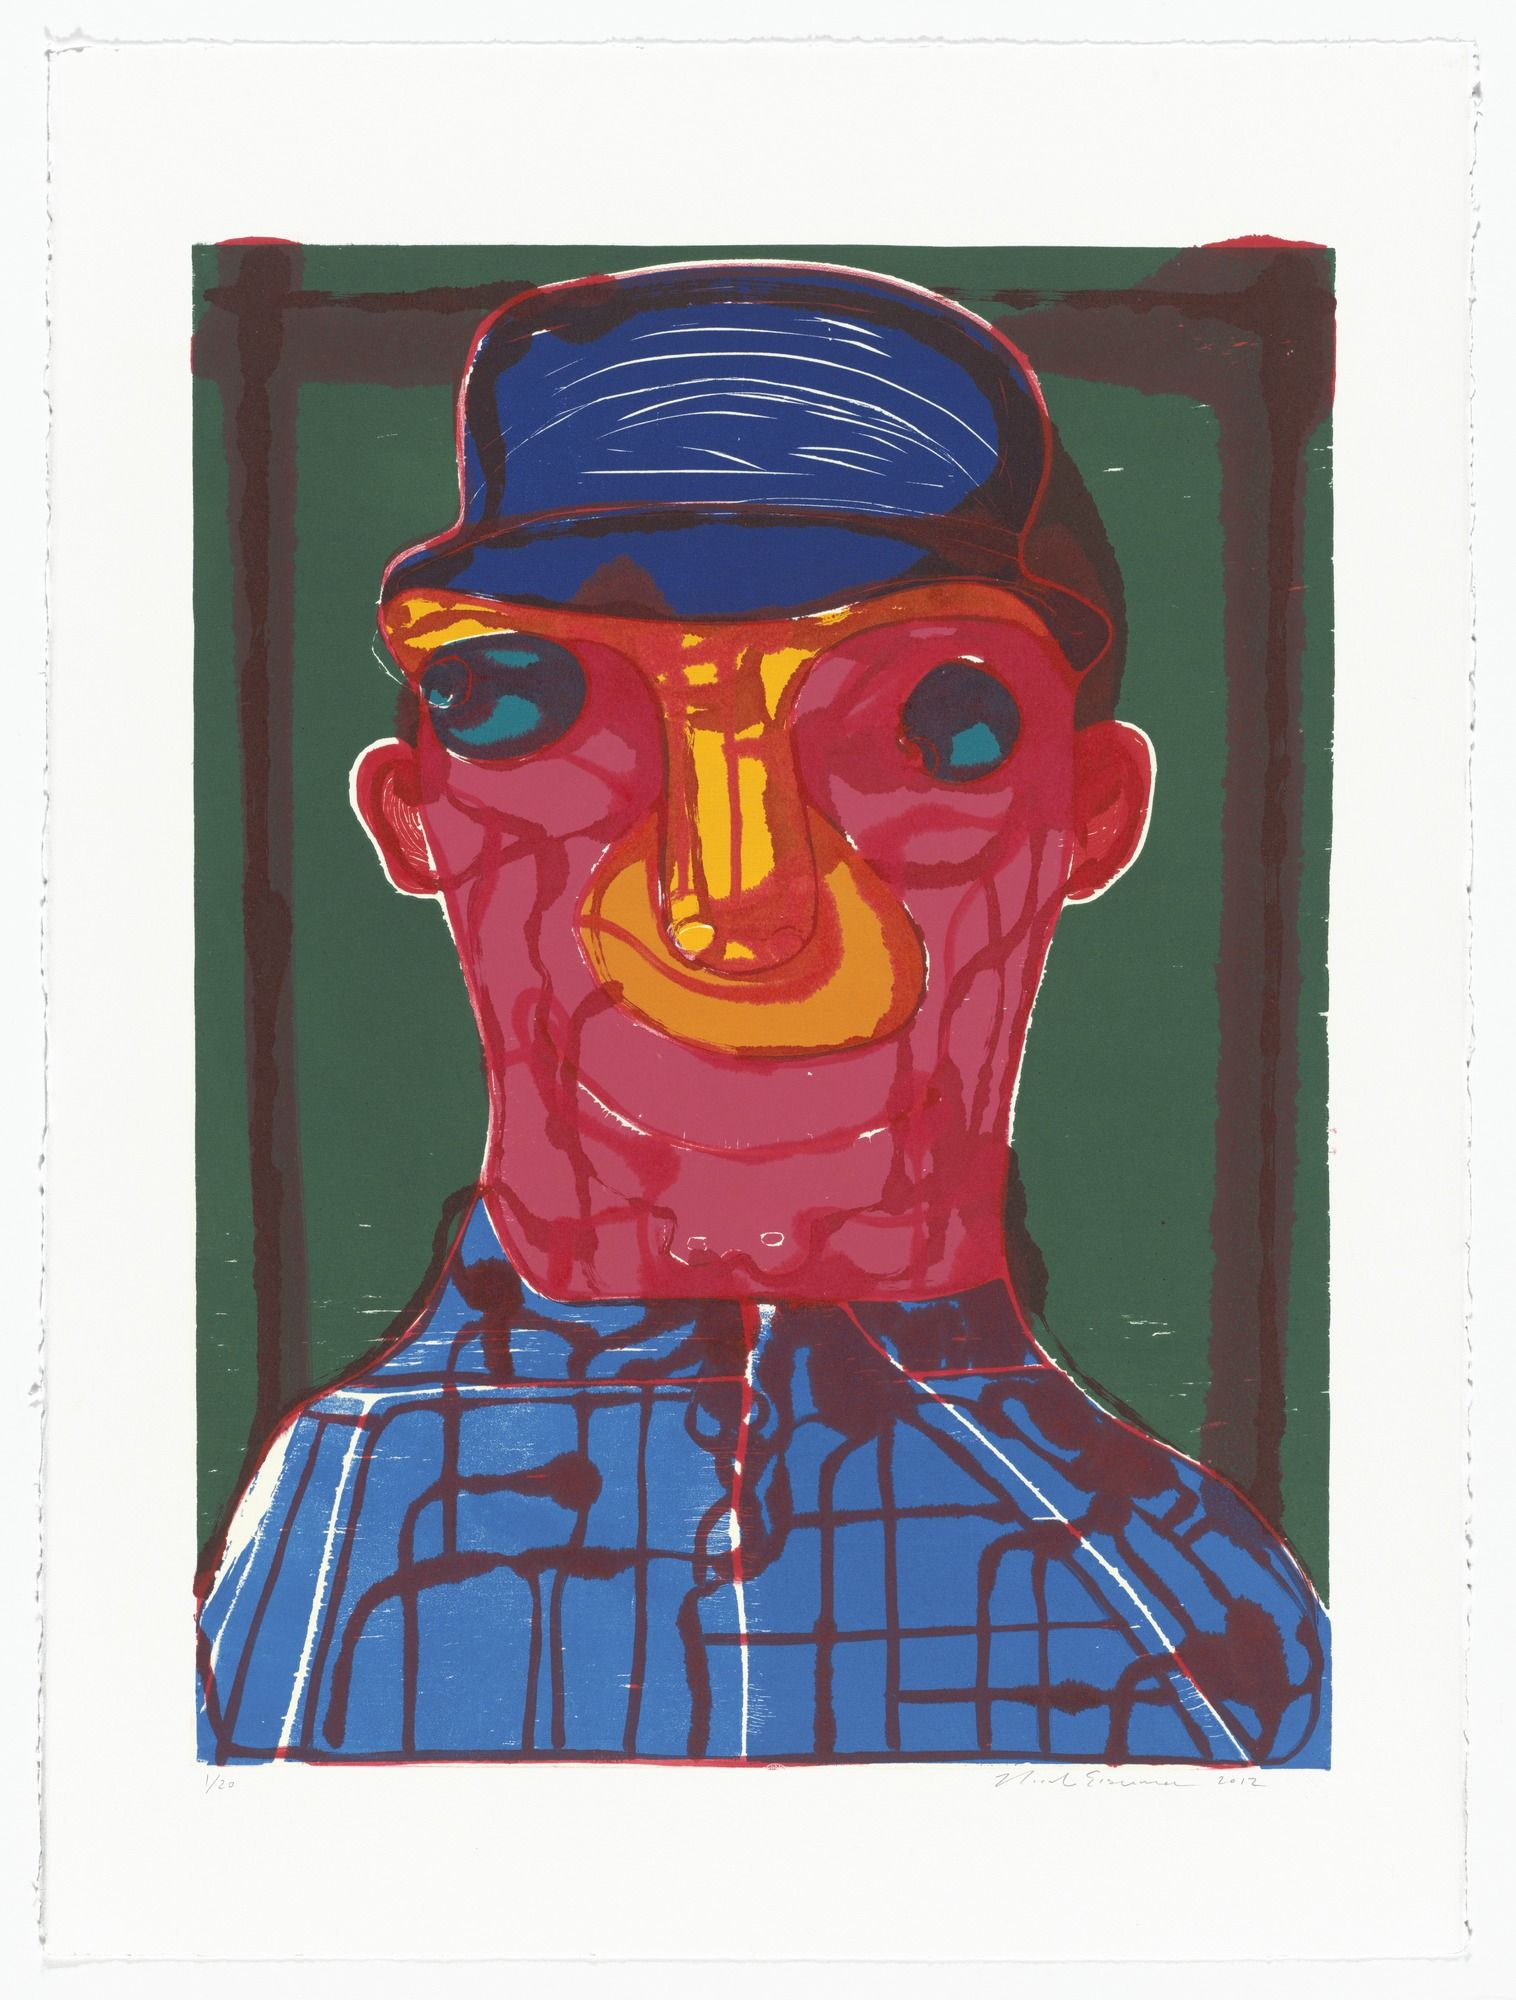 WEEK 1 PINS 10/1/17 Nicole Eisenman. Untitled (for Parkett